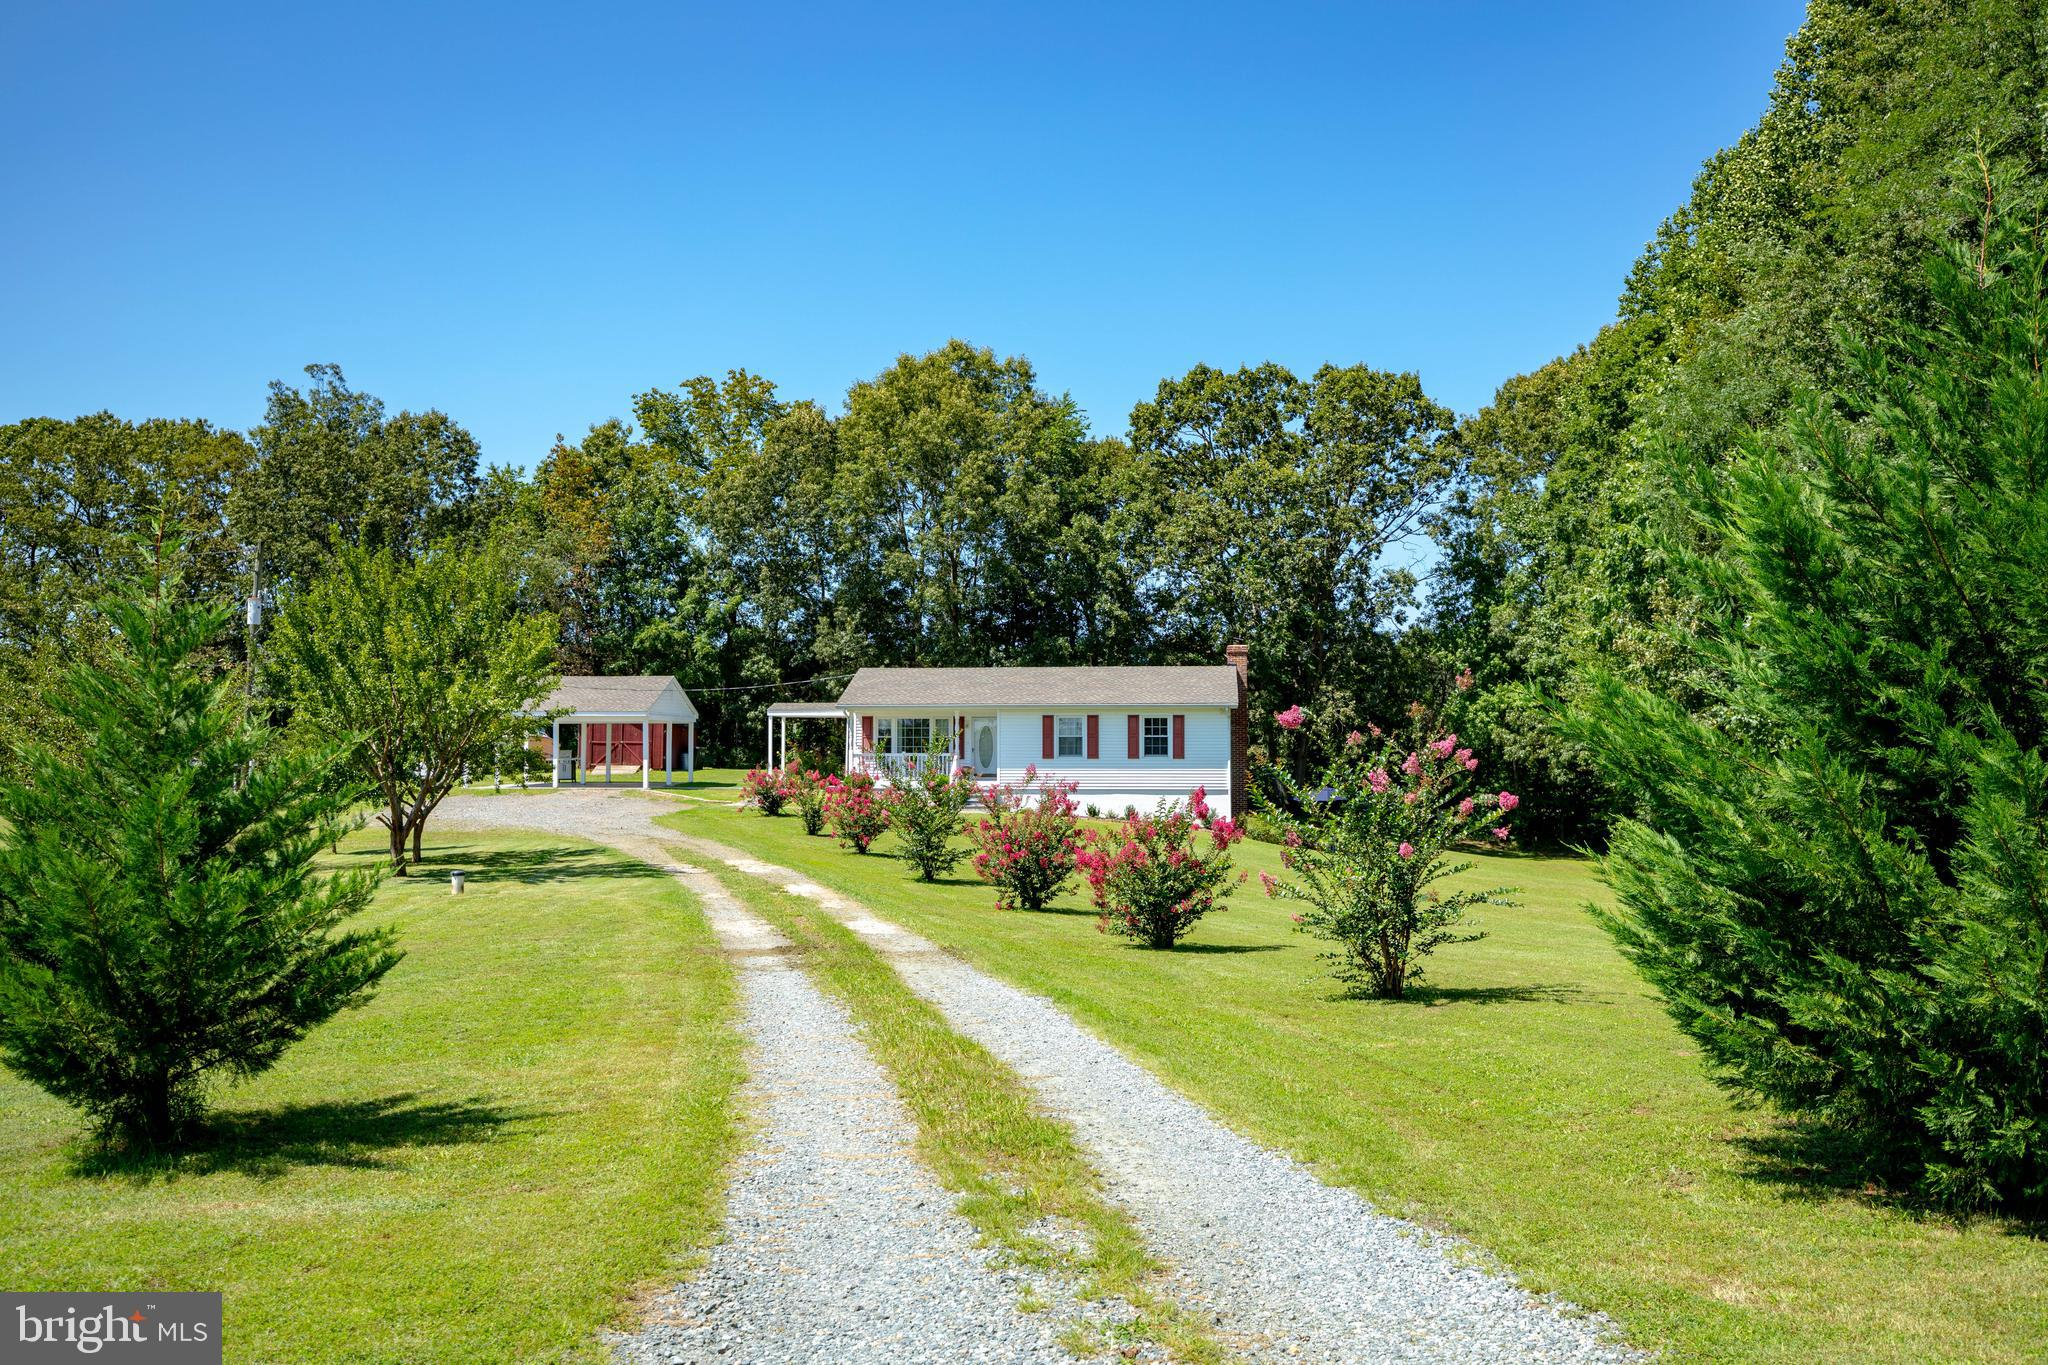 WELCOME TO THIS GORGEOUS 3+ ACRE HOA FREE HOME! BRING YOUR HORSES AND LIVESTOCK!!! VERY SOUGHT AFTER